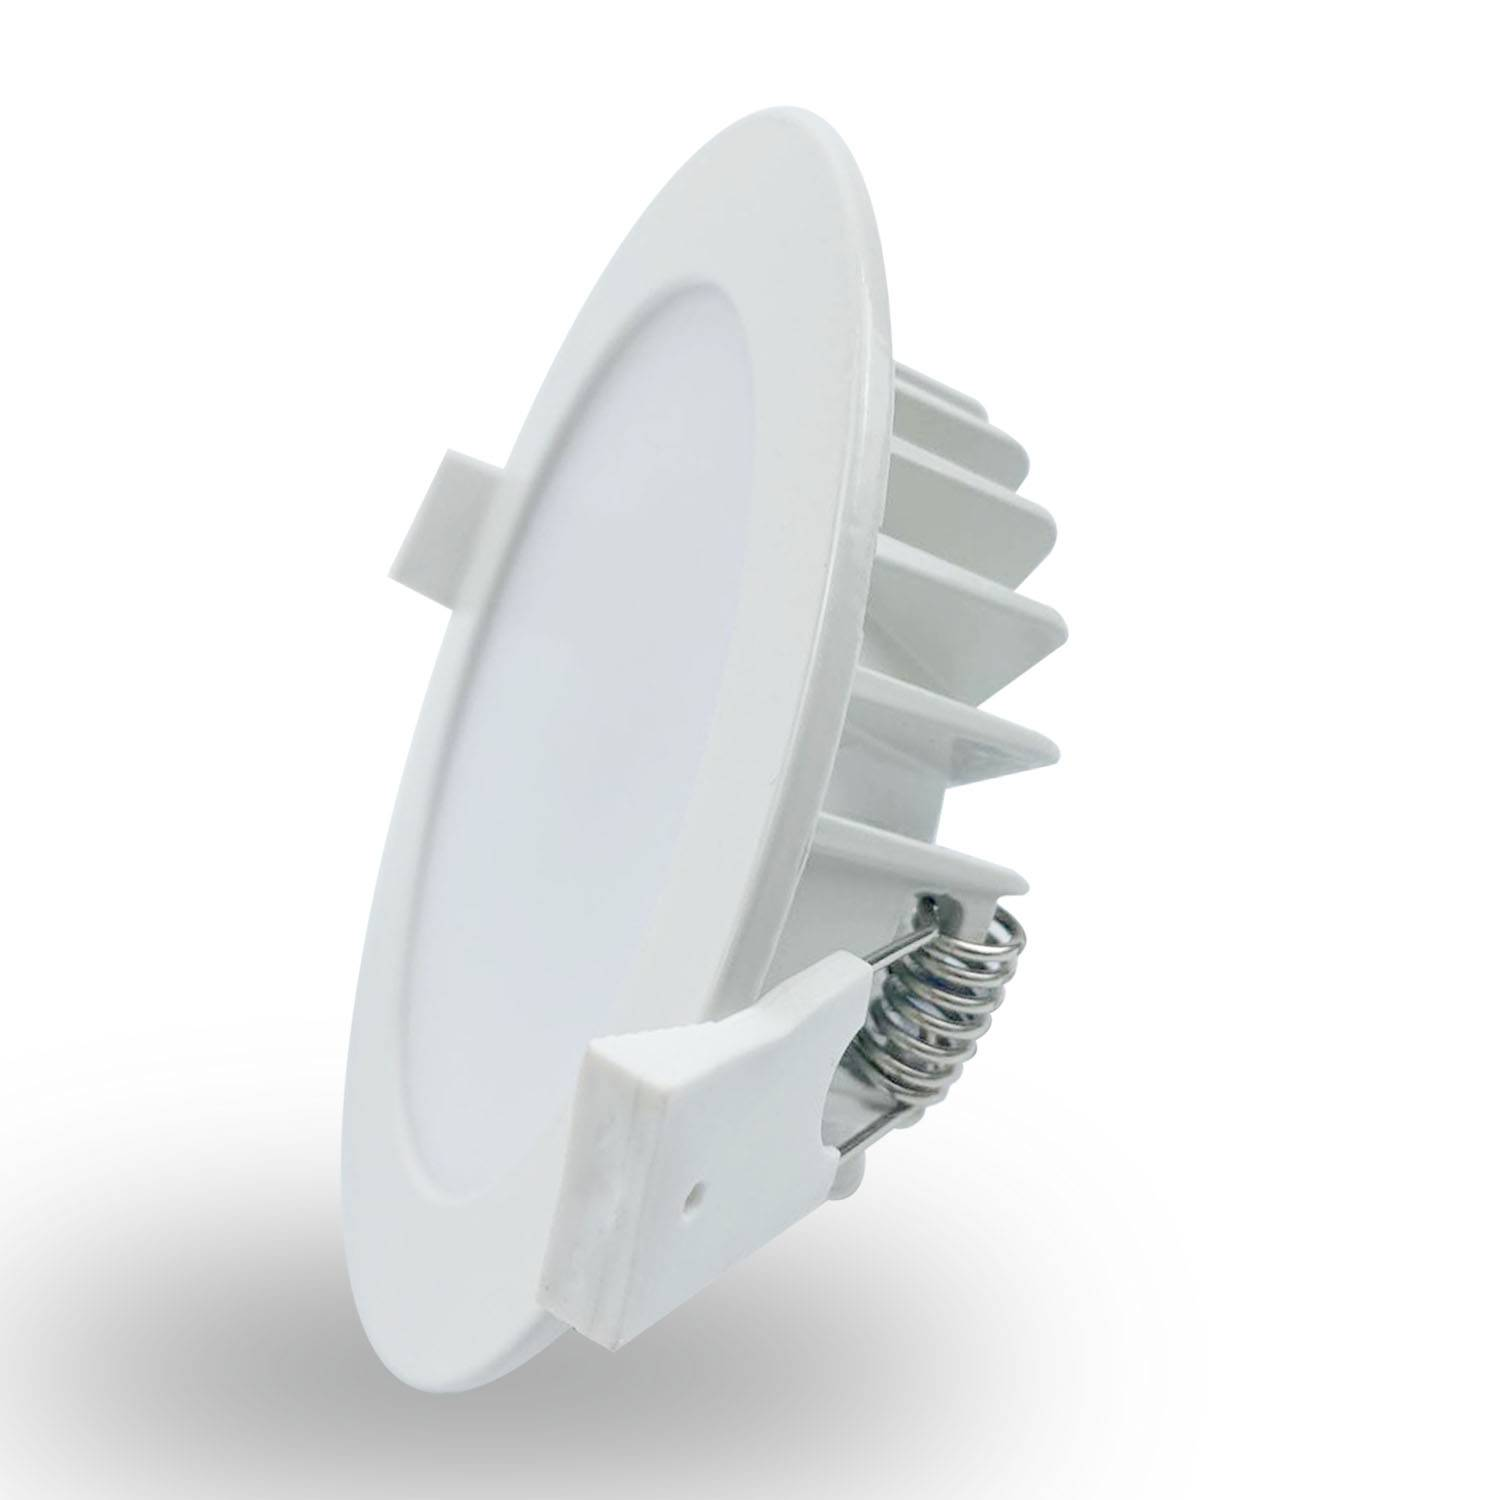 Renewable Design for Smart Down Light - RGBCW Die-casting Aluminum Tuya Smart Downlight – Simons